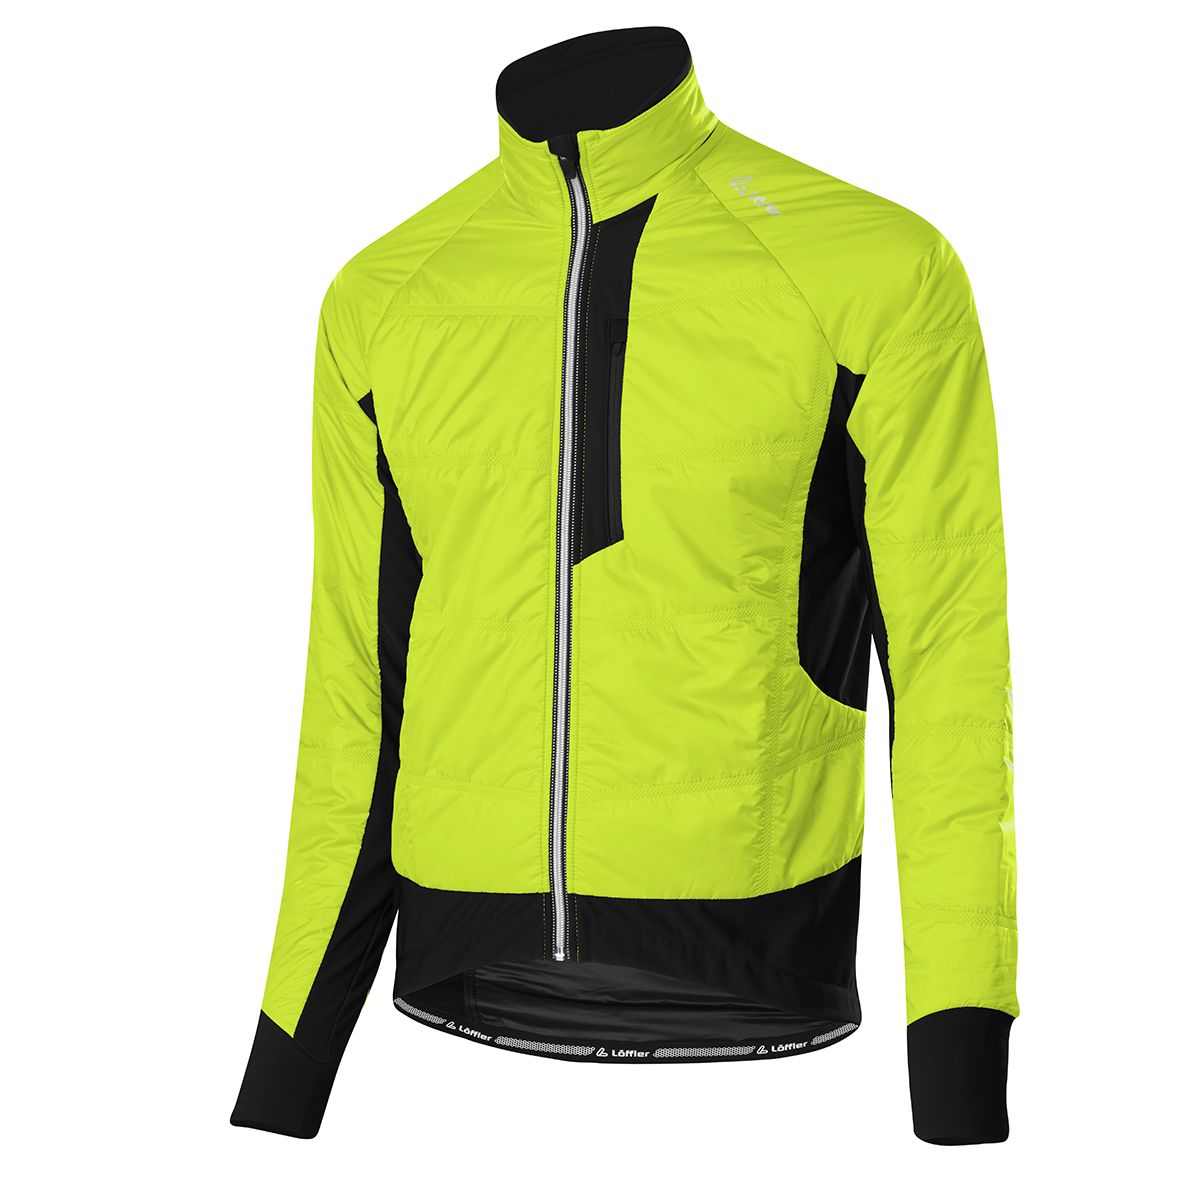 HR. BIKE ISO-JACKE PRIMALOFT MIX Winterjacke